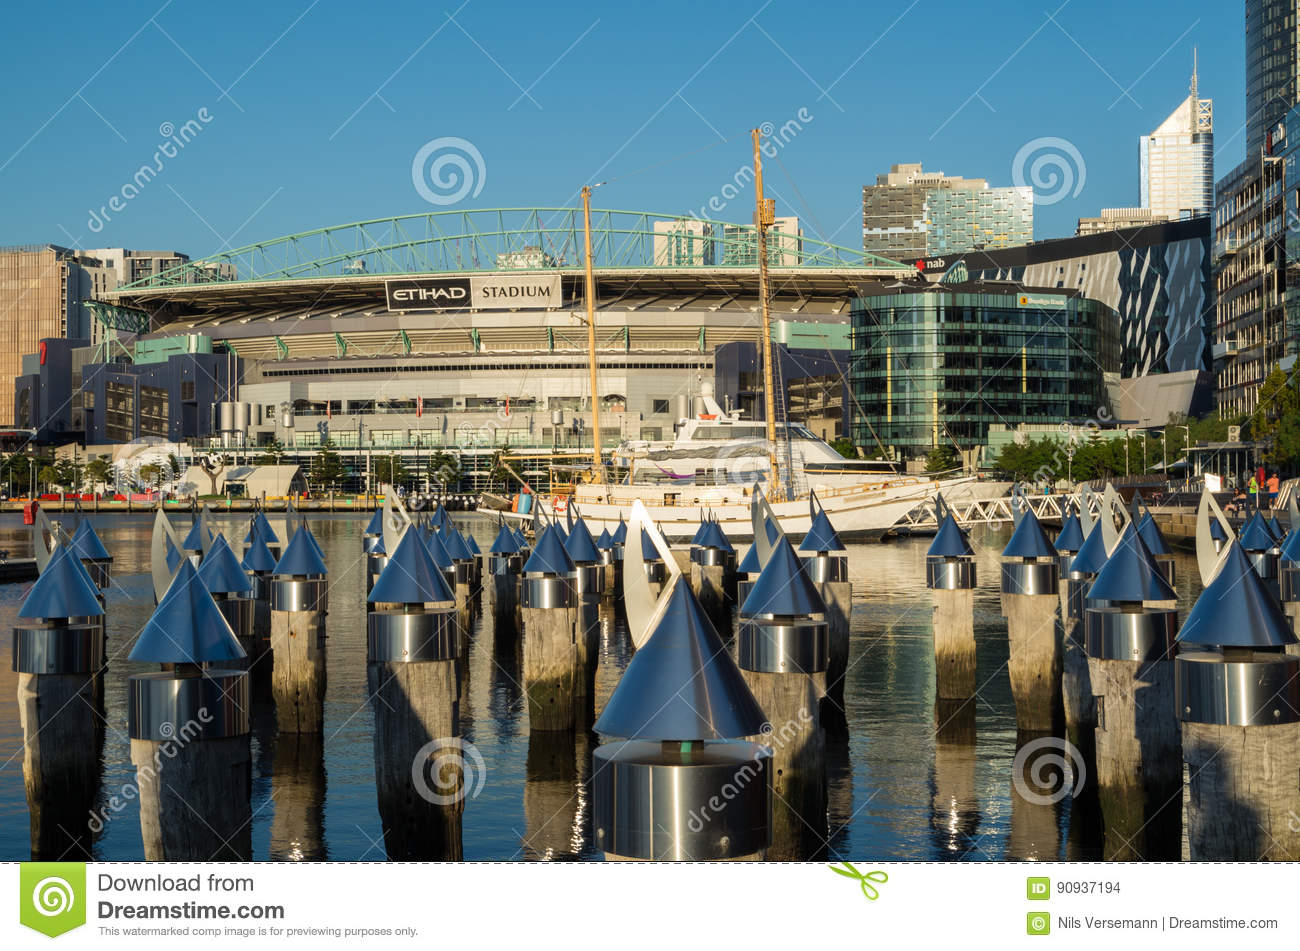 Etihad Stadium In Melbourne Docklands Editorial Stock Image - Image of  outdoor, yacht: 90937194